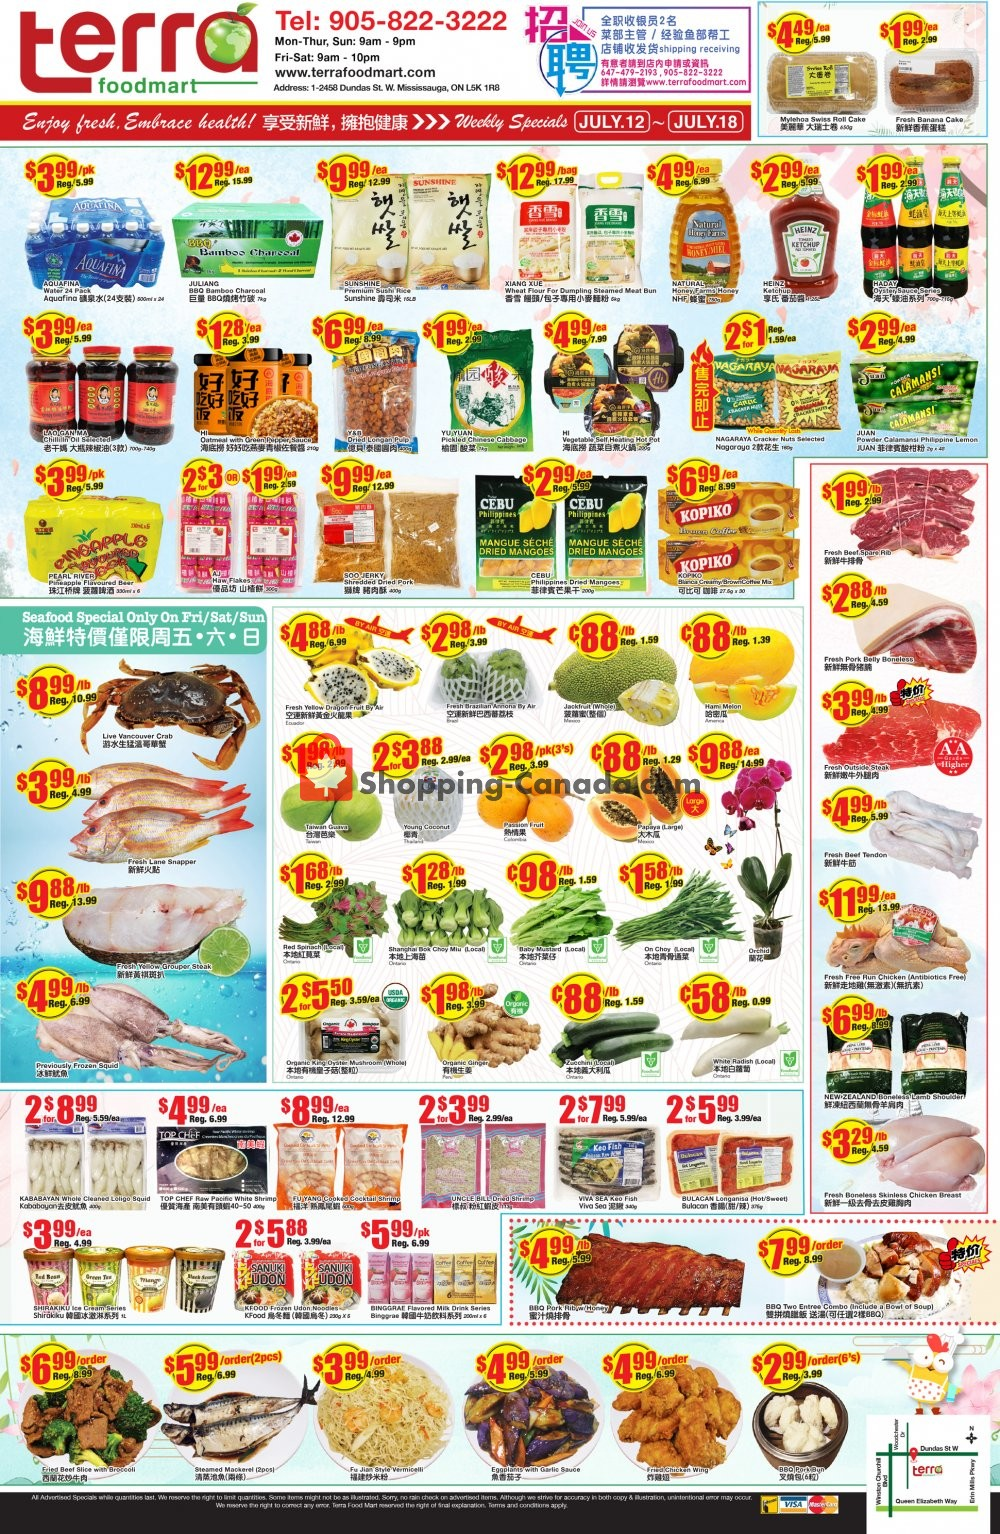 Flyer Terra Foodmart Canada - from Friday July 12, 2019 to Thursday July 18, 2019